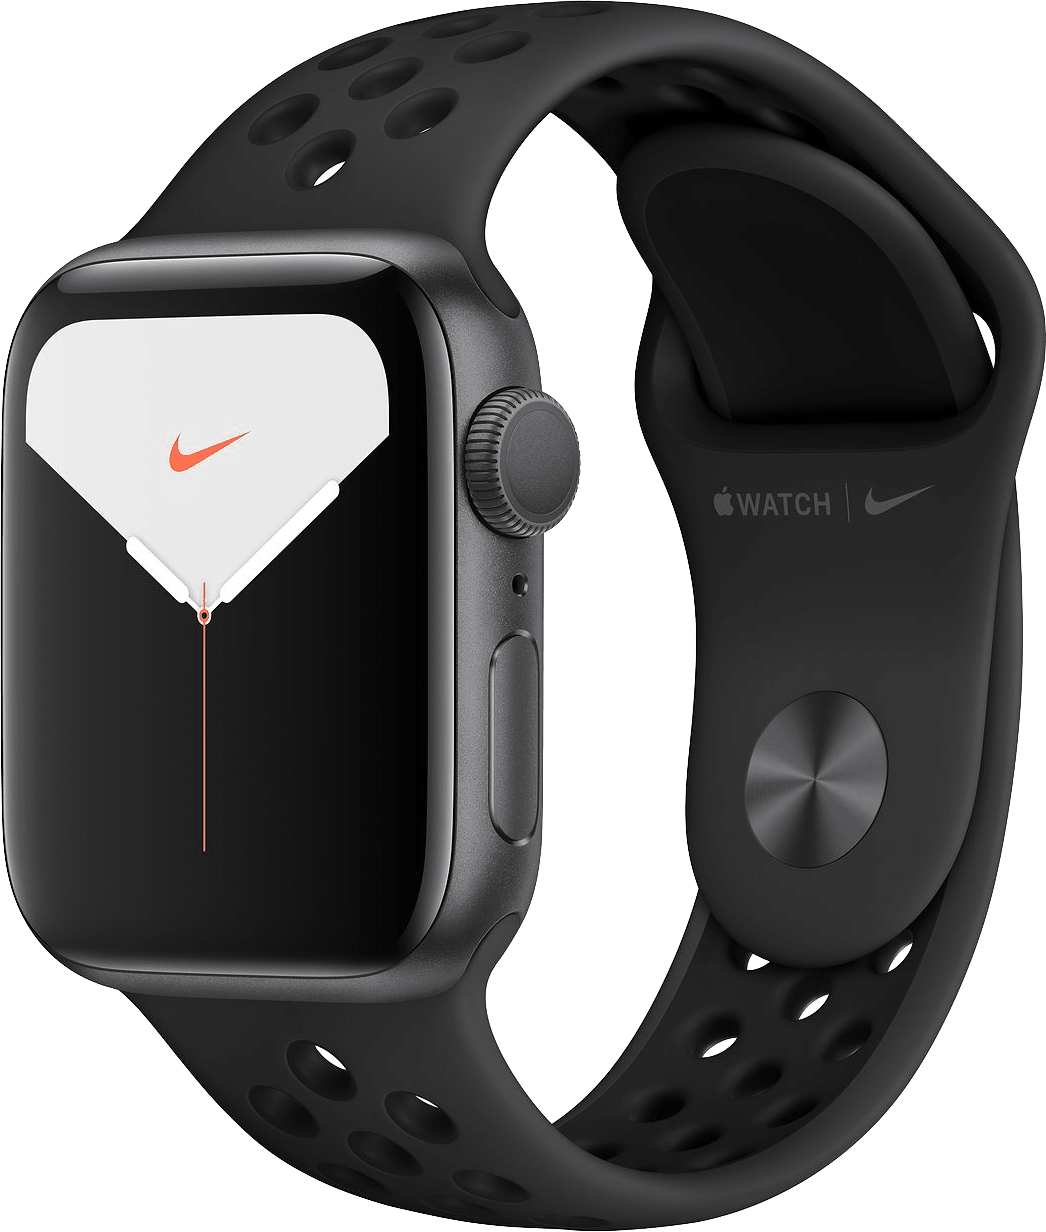 Anthrazit / Schwarz Apple Watch Nike Series 5 GPS, 40mm.2